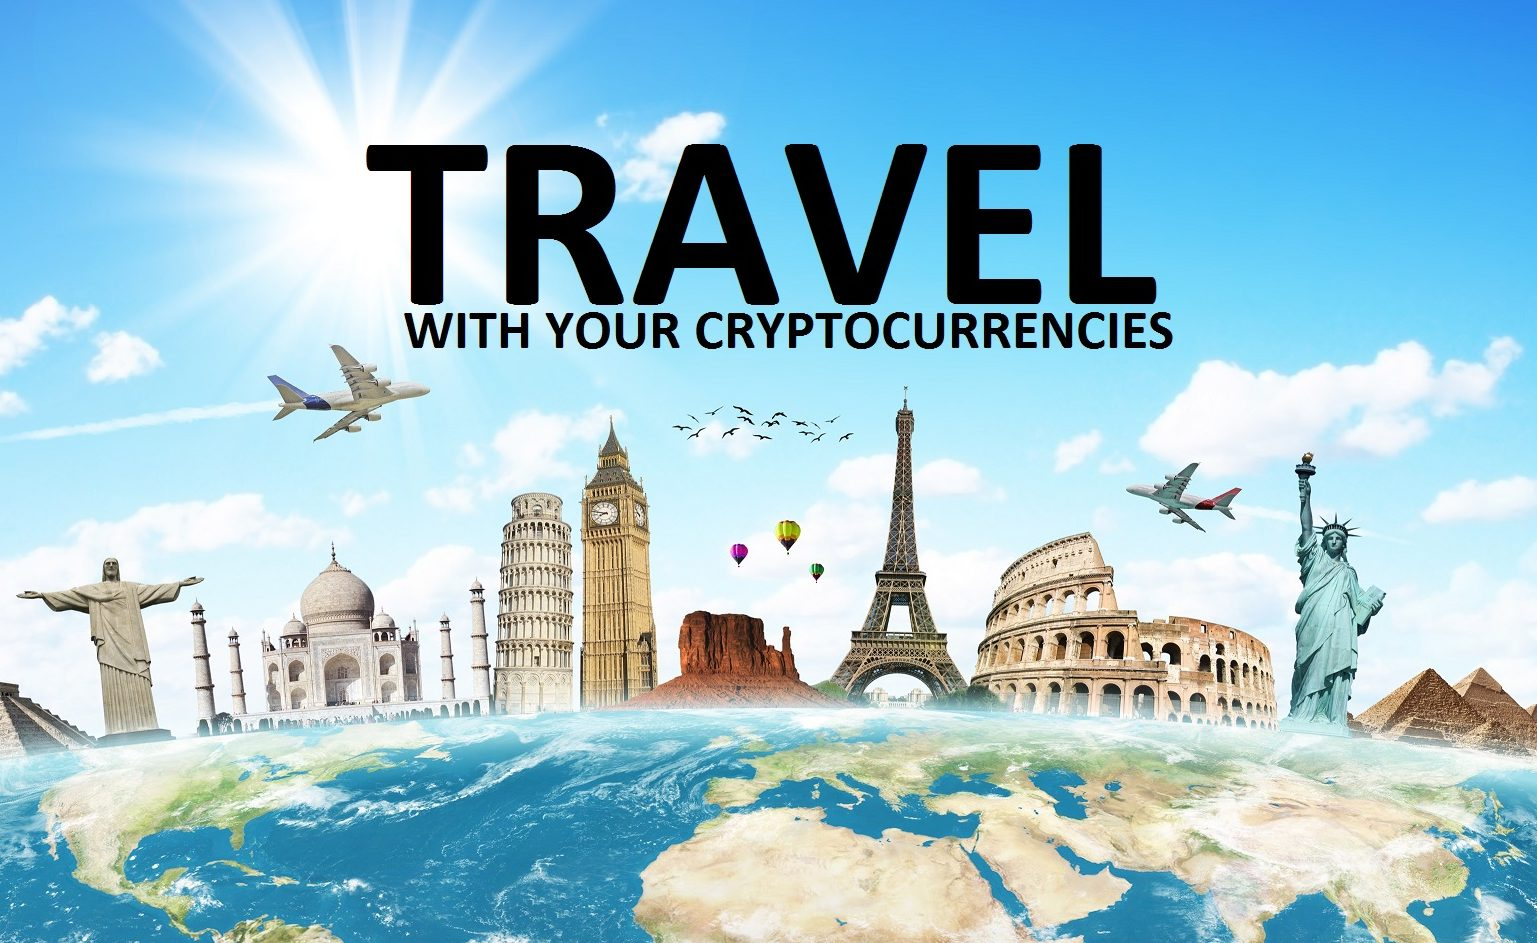 Where can i travel with my cryptocurrencies